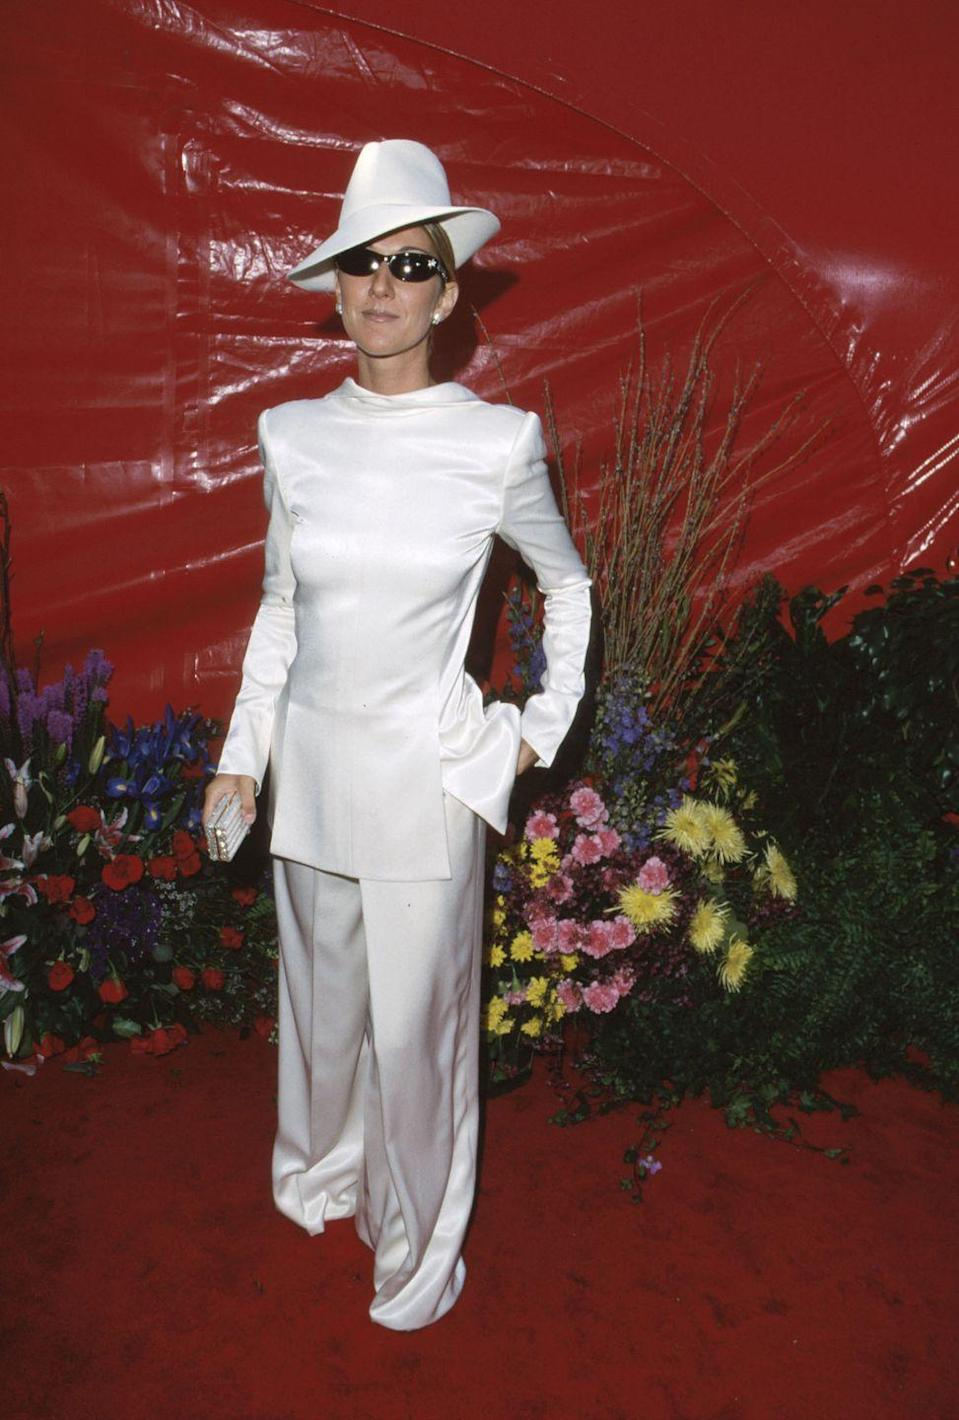 <p>Slated as one of her biggest fashion risks, this white suit certainly pushed boundaries. The oversized trousers contrast the adorably tiny clutch, and the matching hat completed the look.</p>